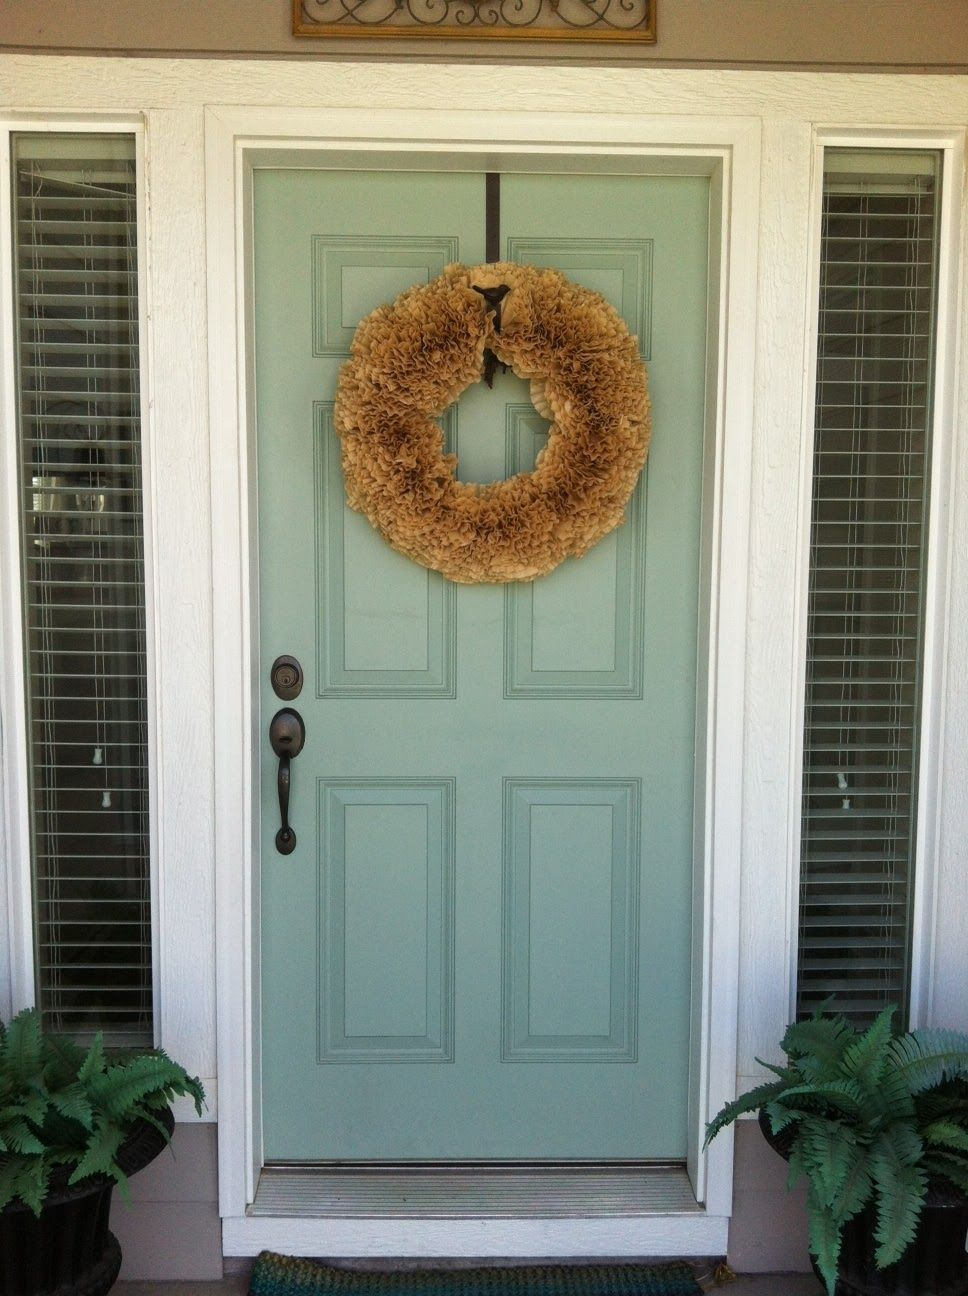 Benjamin moore front door paint colors - Beige House Front Door Paint Color Schemes Blue Is Calming